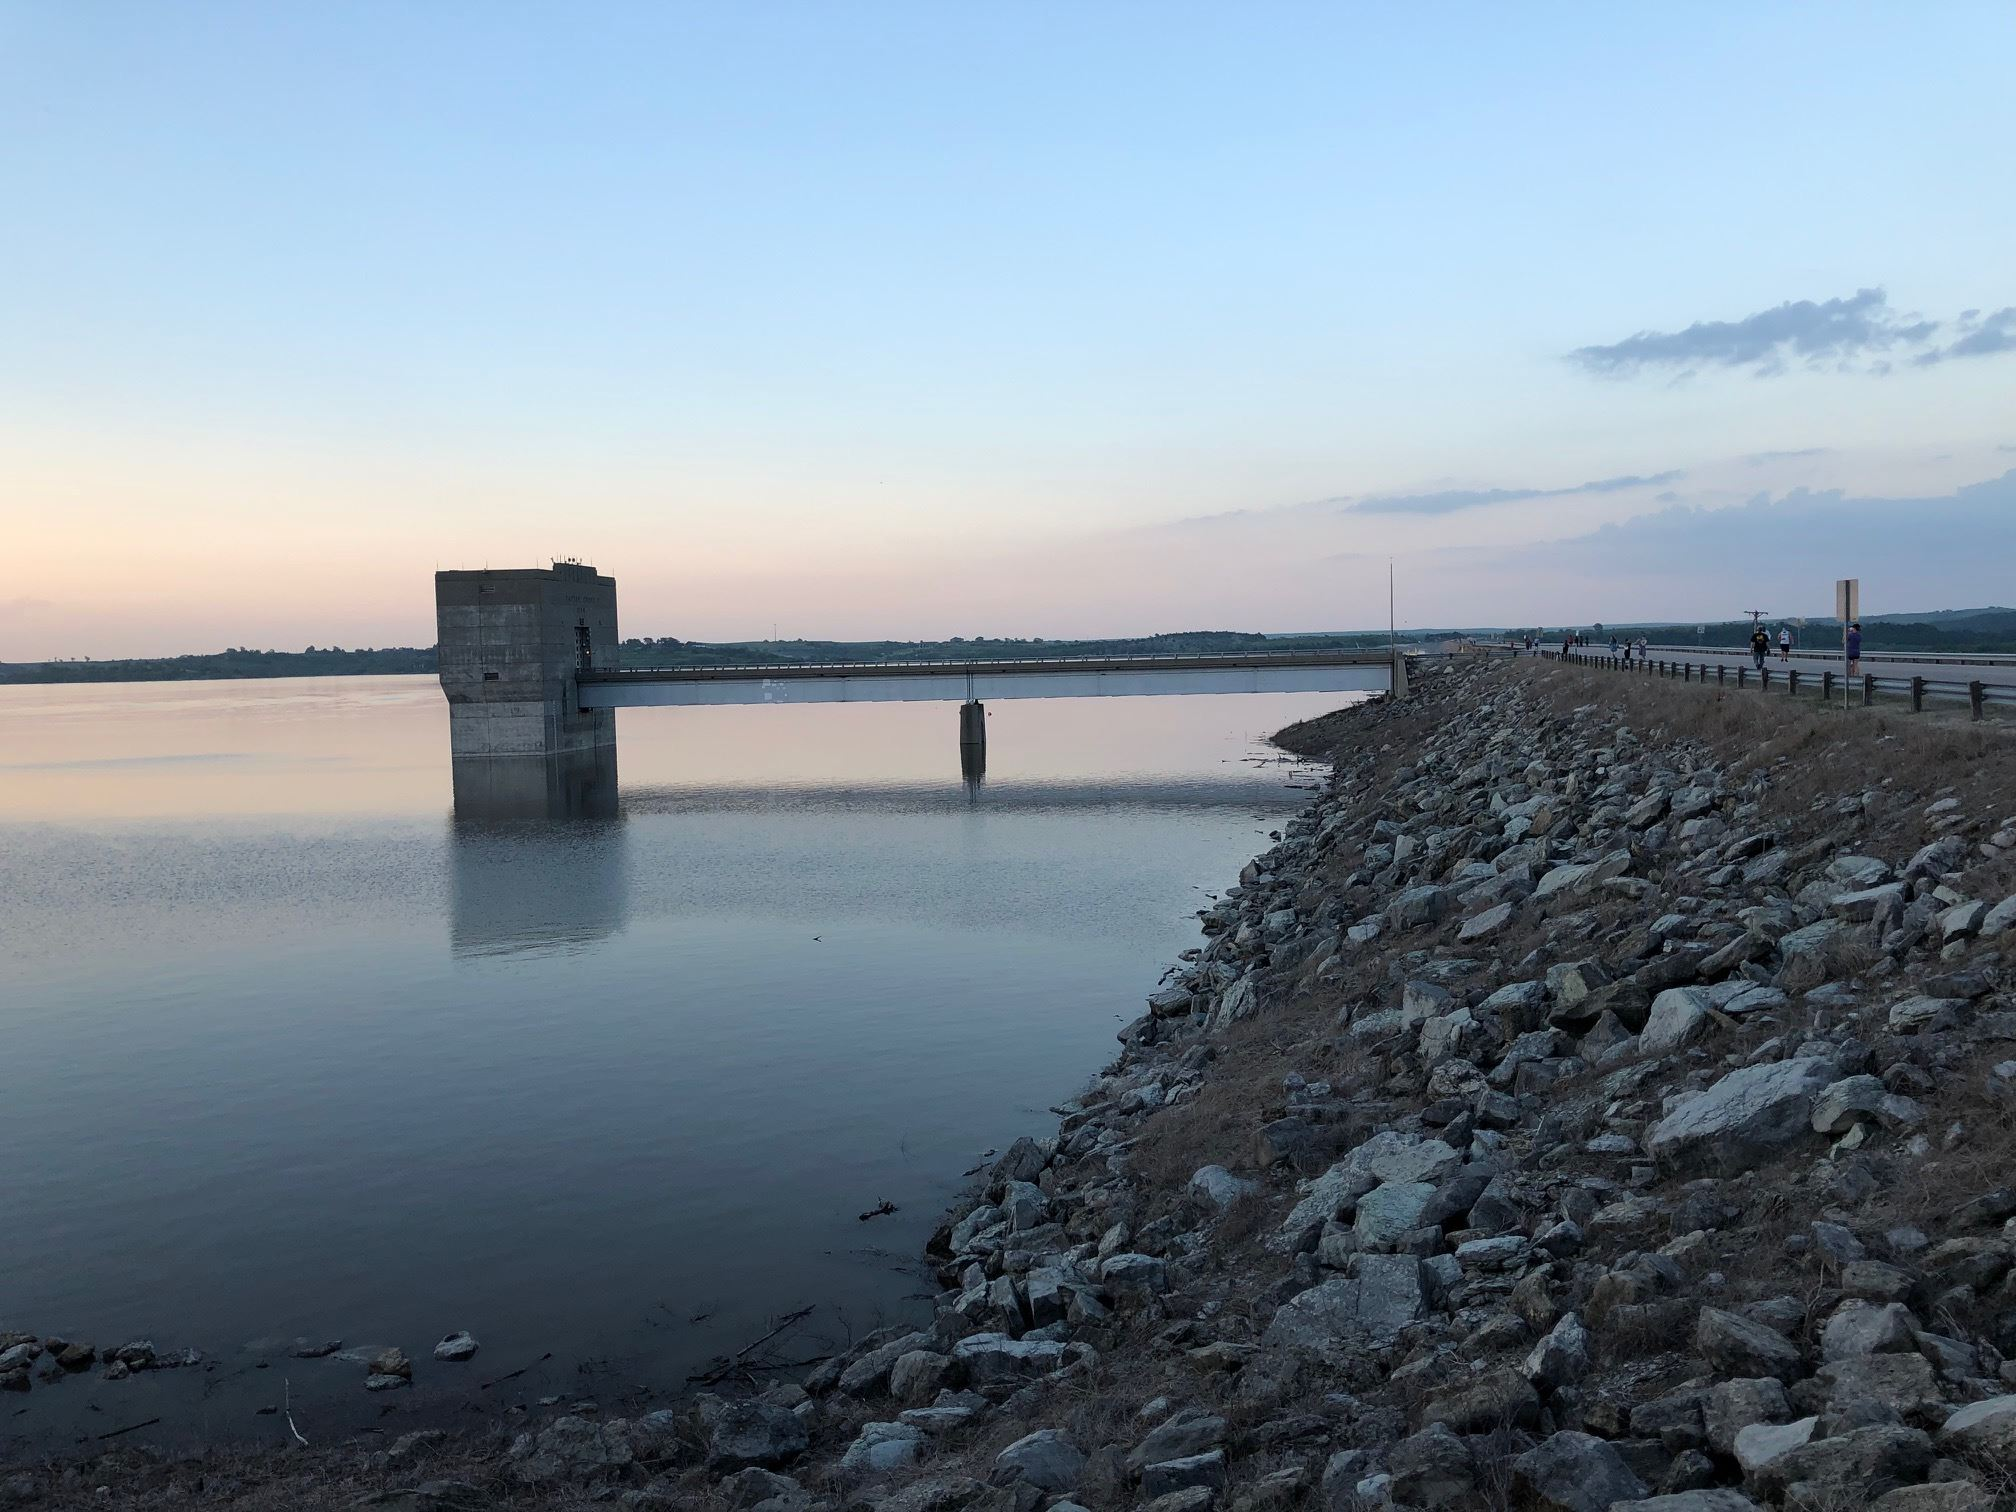 photo of the dam at Tuttle Creek Lake taken 5/27/2019